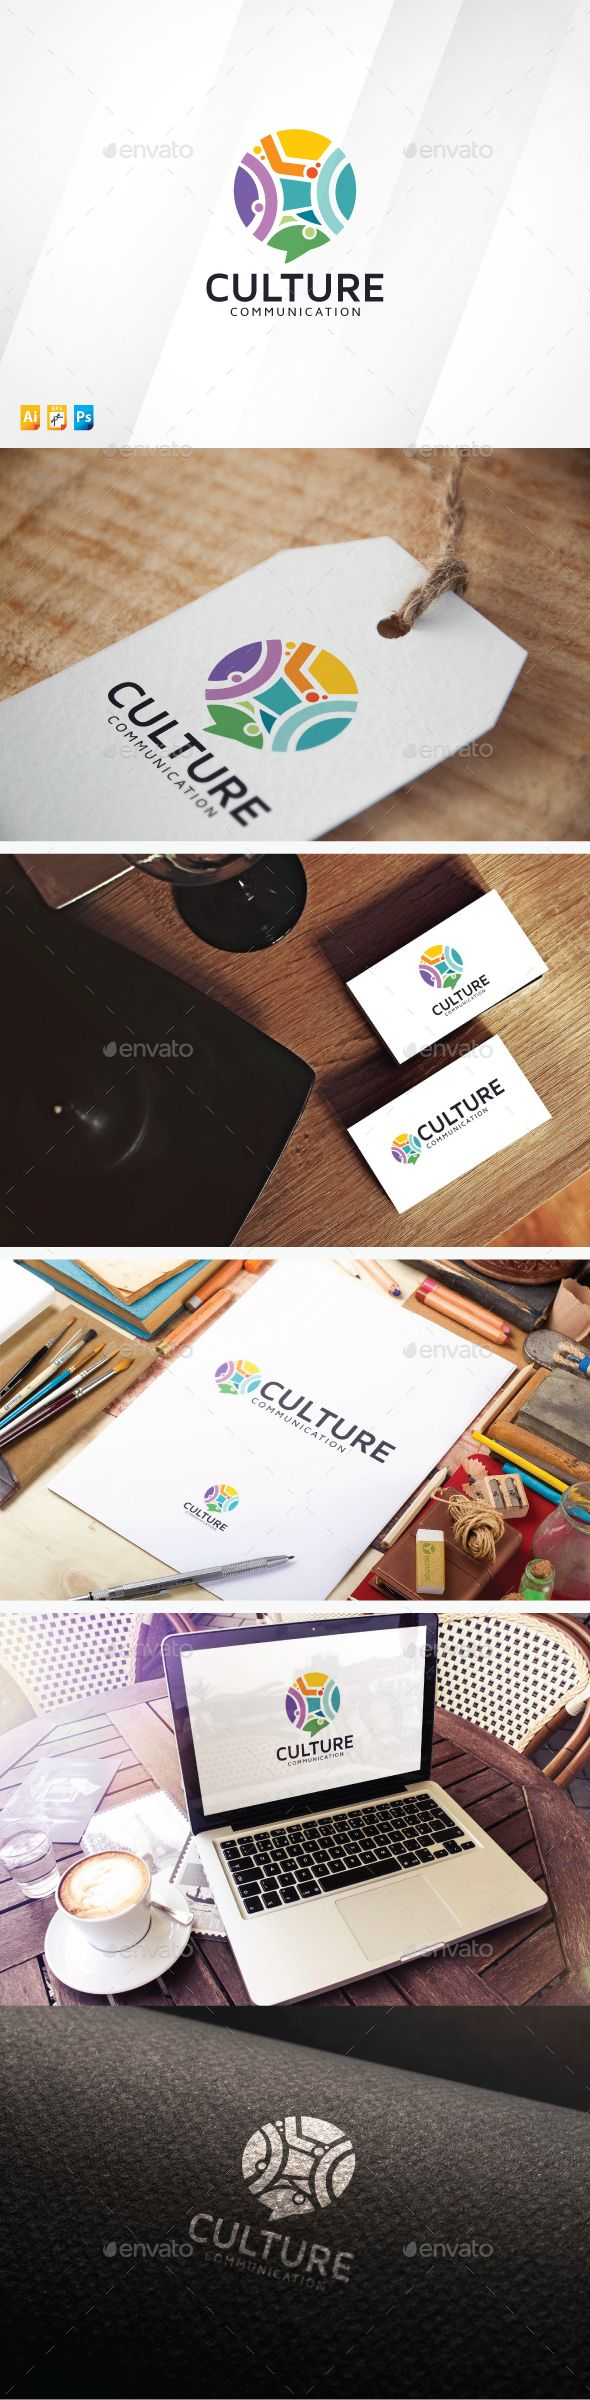 Culture Communication Logo Design Template Vector #logotype Download it here: http://graphicriver.net/item/culture-communication/13827144?s_rank=335?ref=nesto